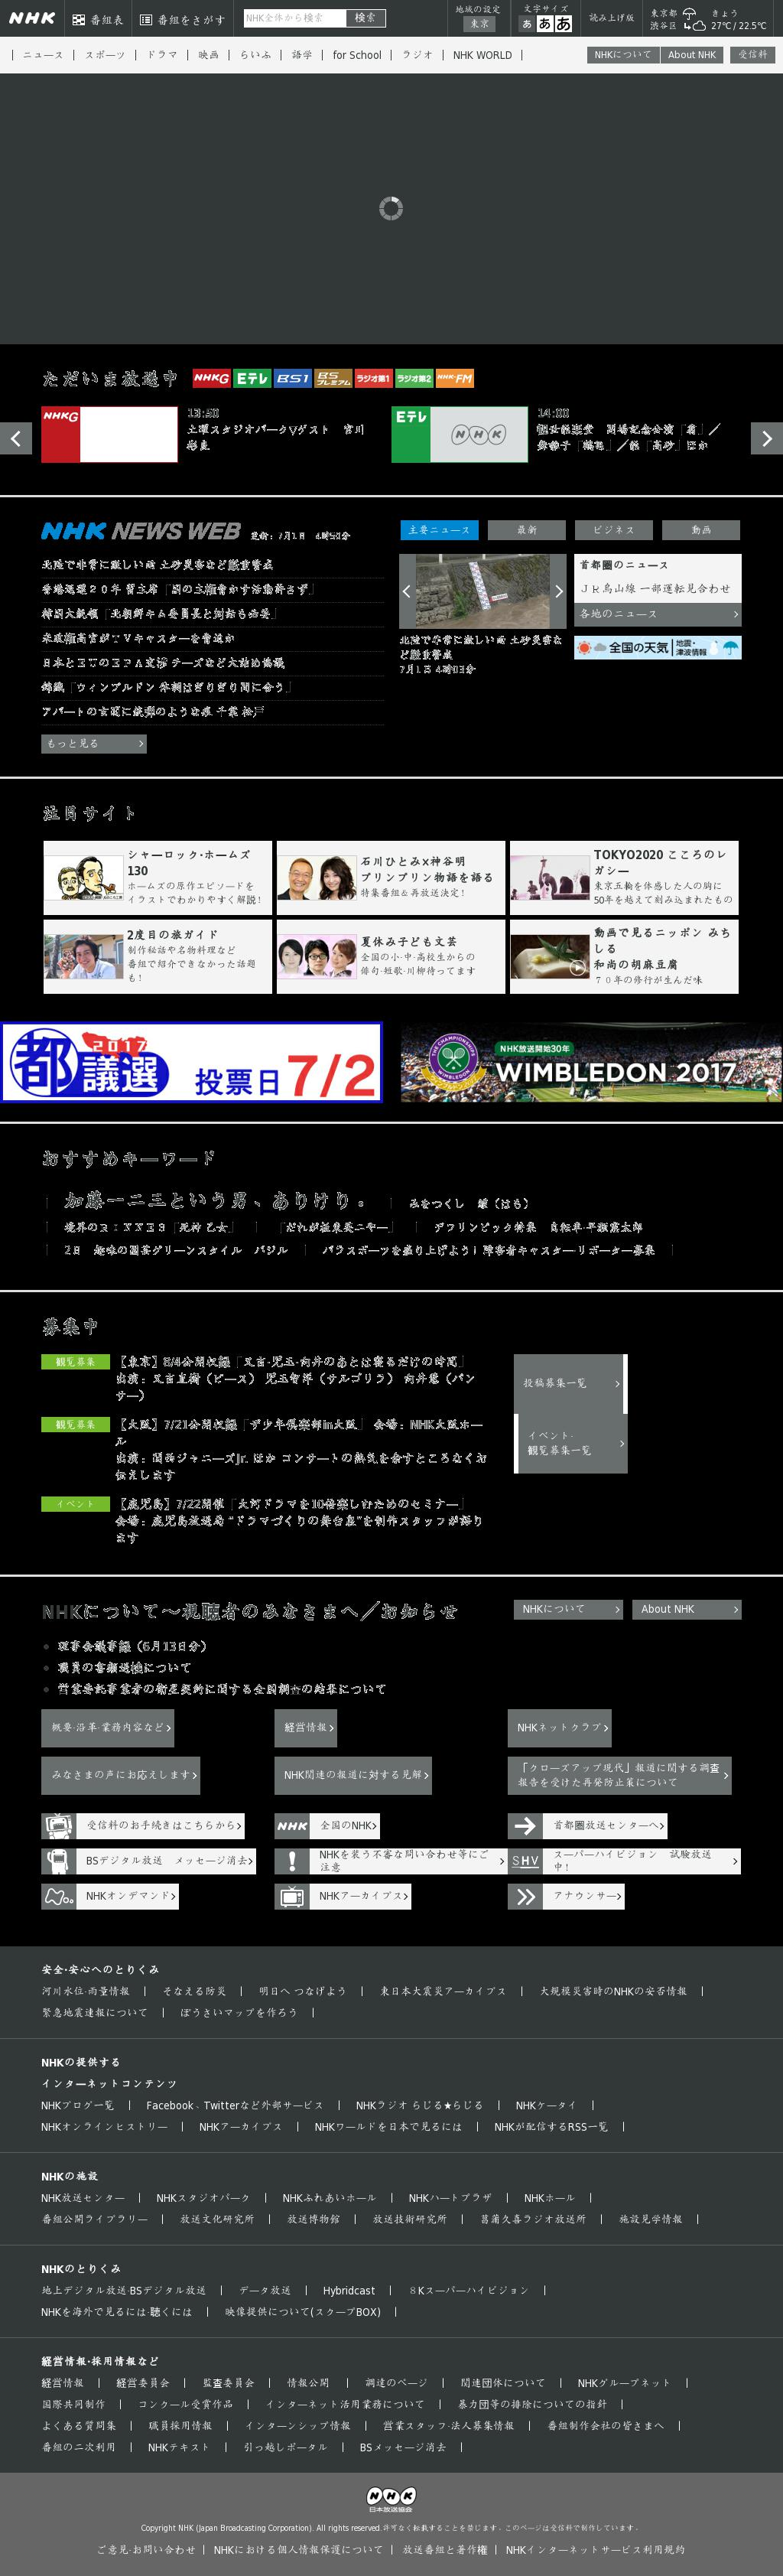 NHK Online at Saturday July 1, 2017, 5:13 a.m. UTC